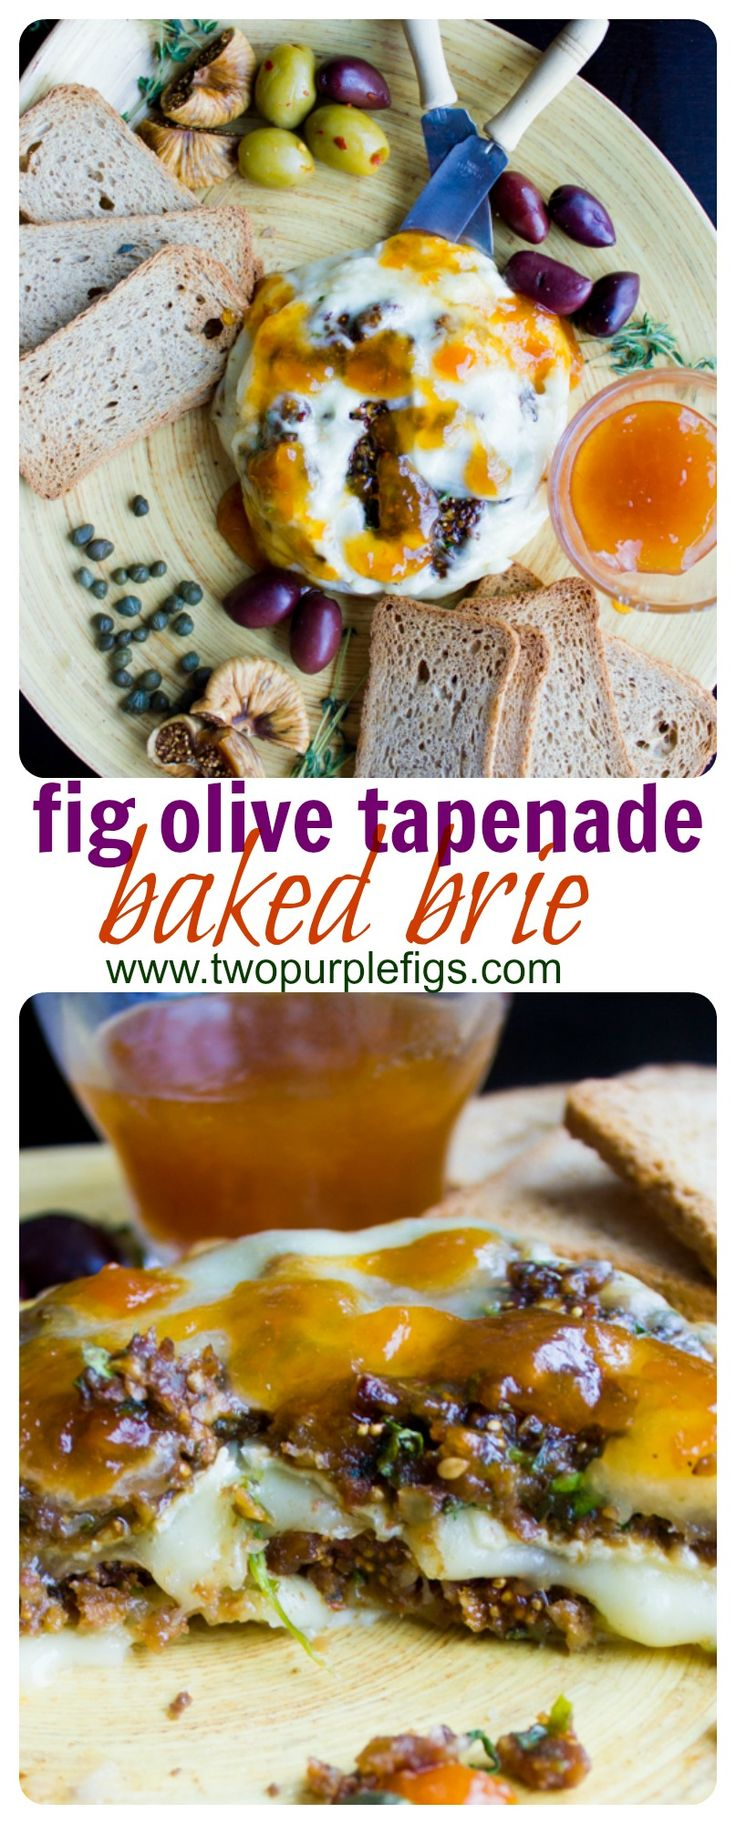 Fig Olive Tapenade Stuffed Brie. A 5 min fig olive balsamic caper tapenade that stuffs and tops a whole round of brie, baked for 8 mins for an impressive addictive easy last minute appetizer! www.twopurplefigs.com